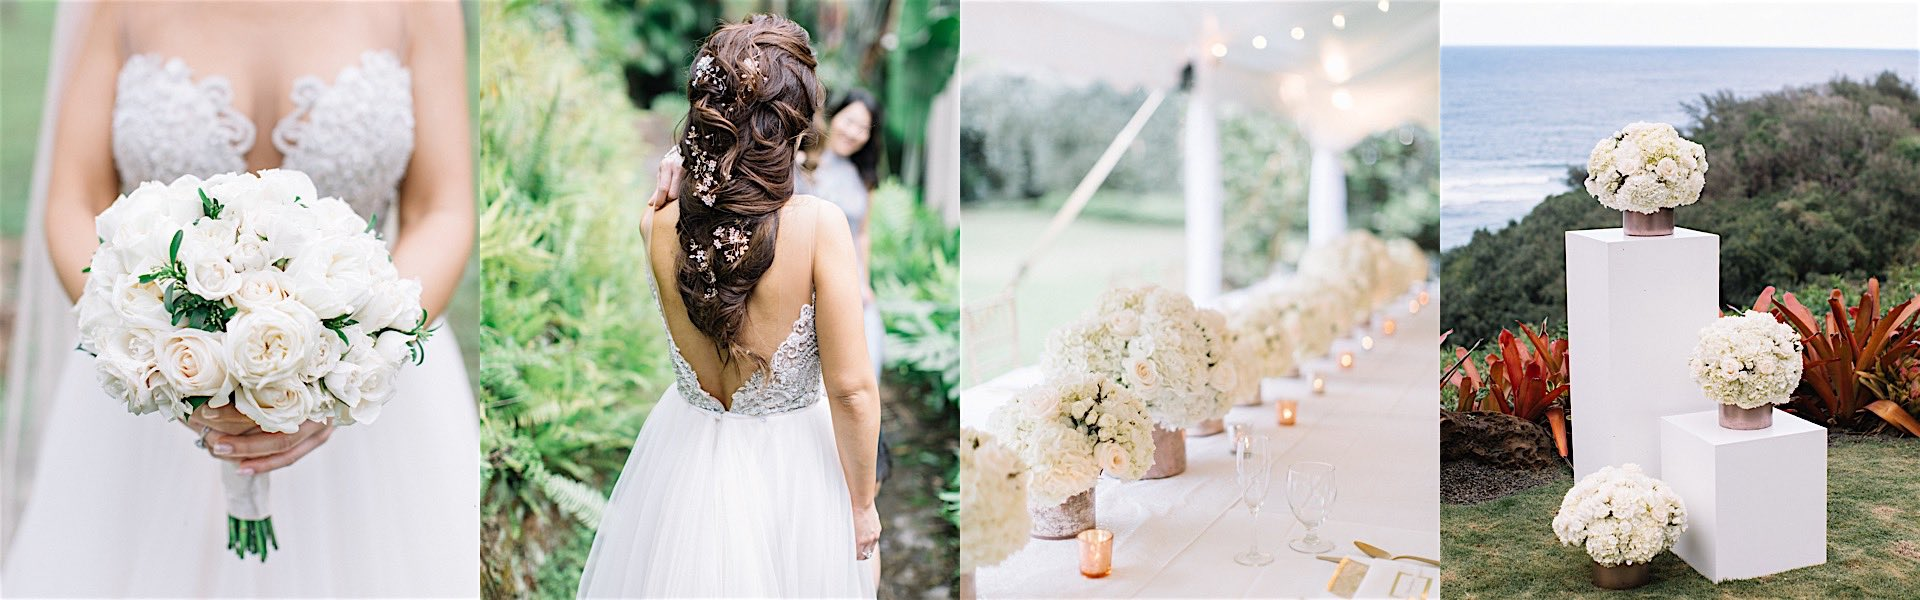 Whimsical and pristine hawaii wedding modwedding whimsical and pristine white hawaii wedding junglespirit Images